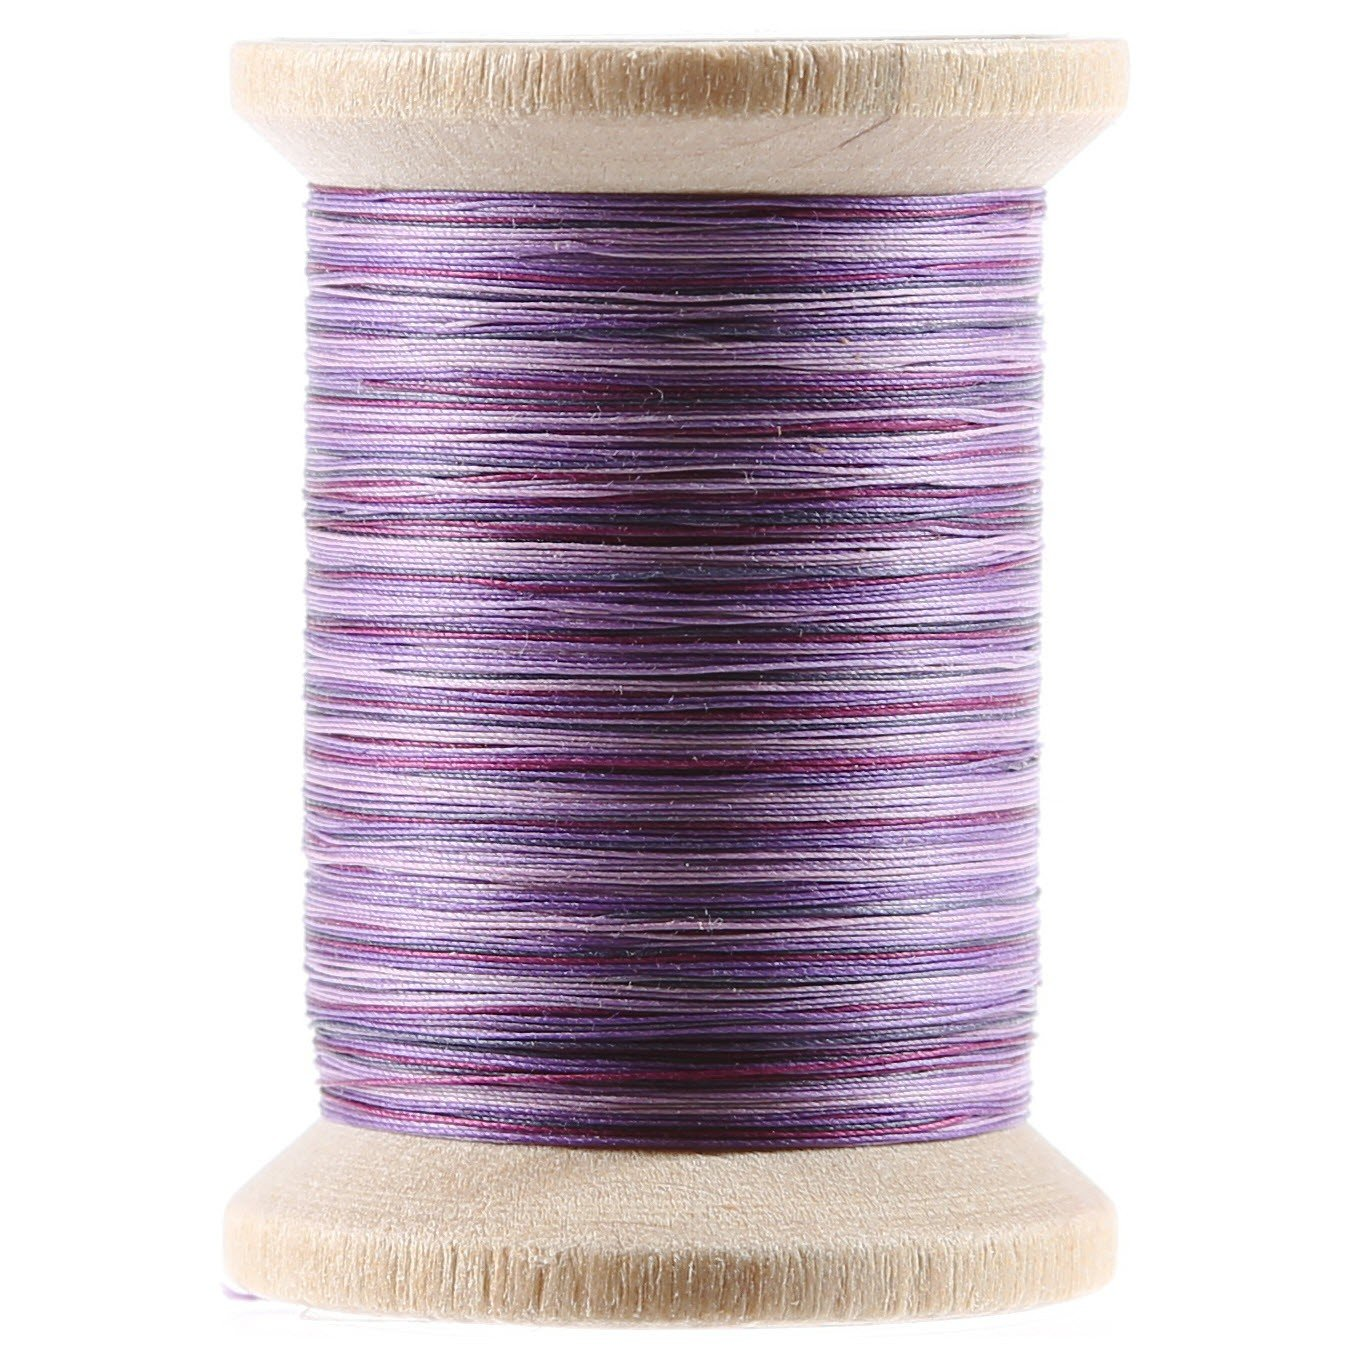 Variegated Cotton Hand Quilting Thread 400yds Purples